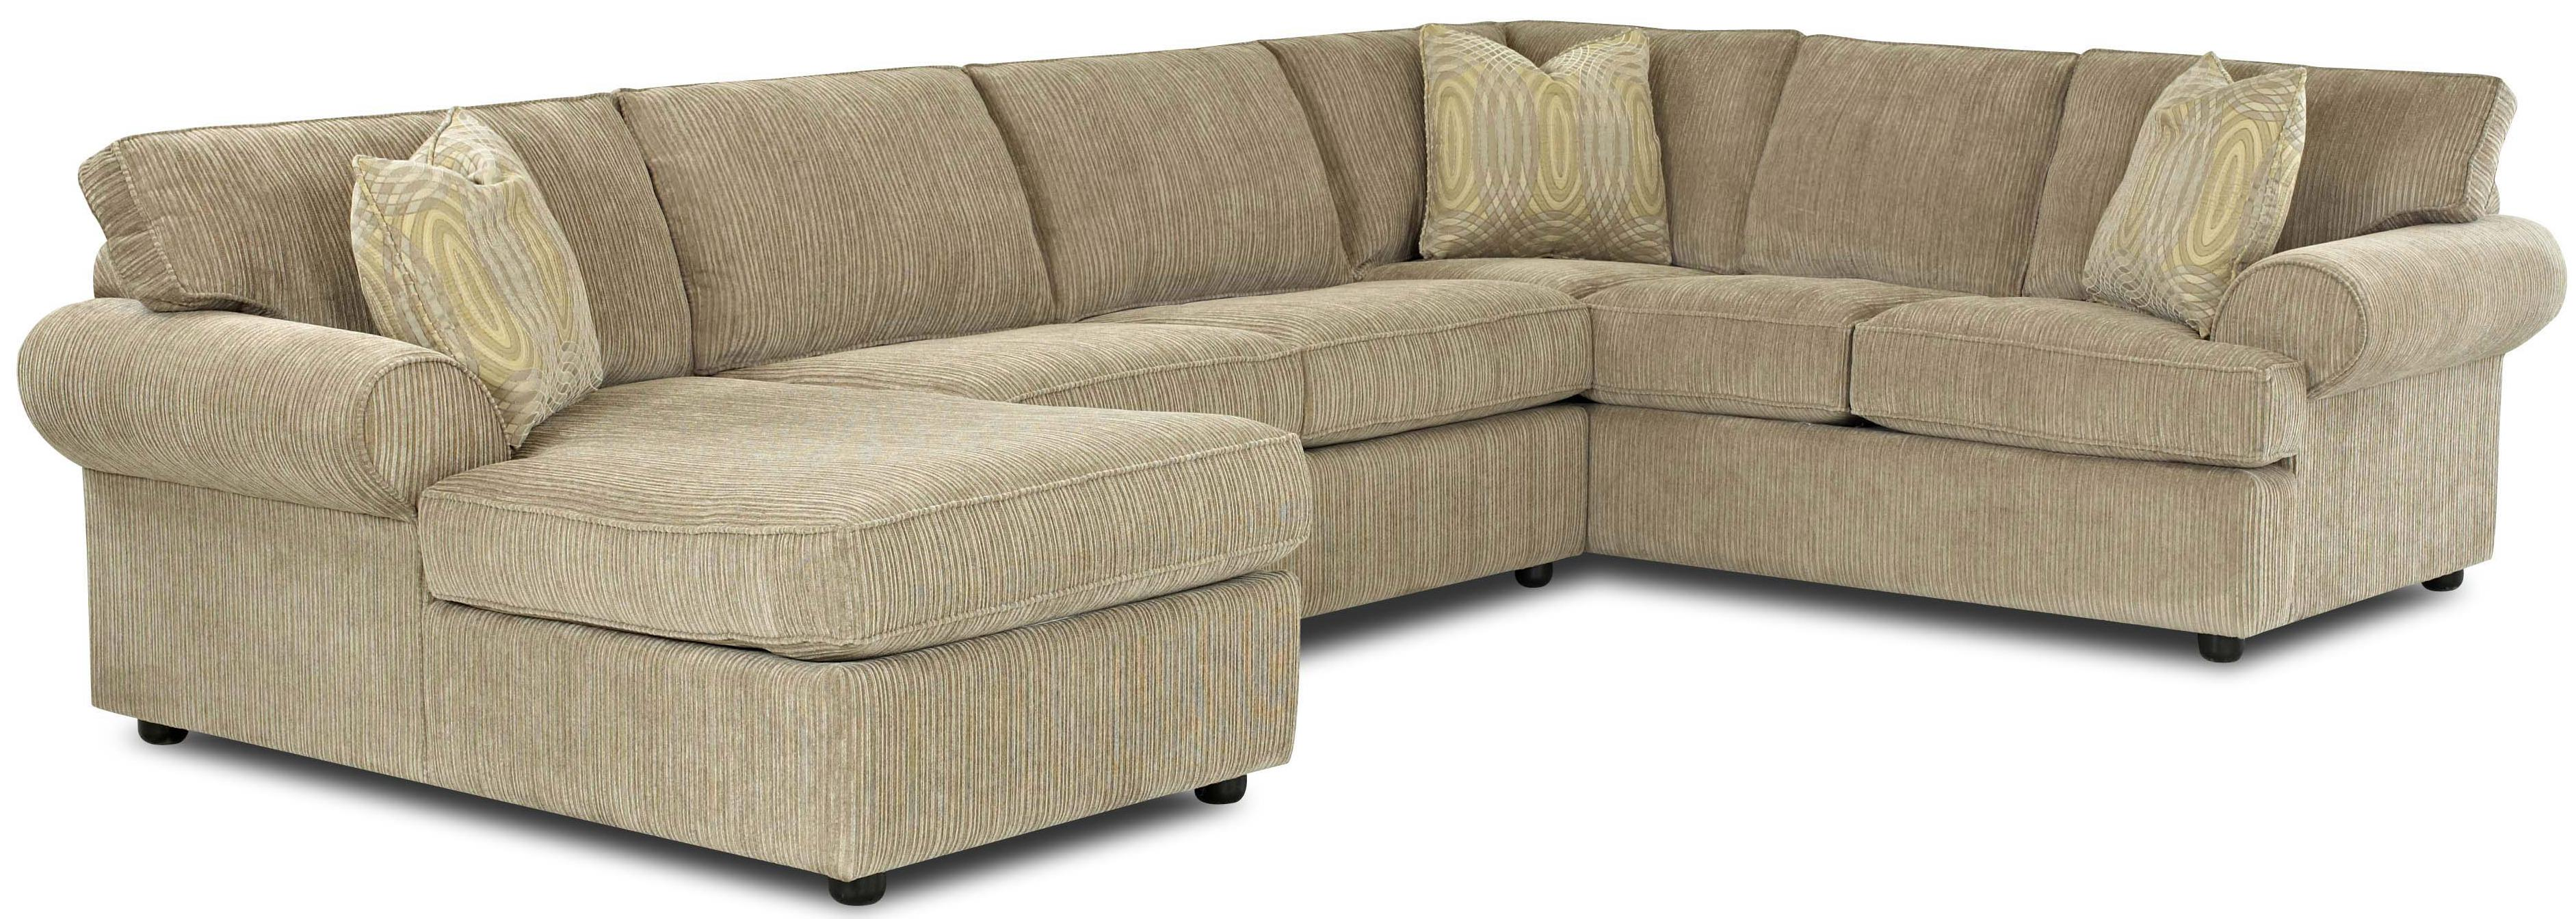 Julington Transitional Sectional Sofa With Rolled Arms And Left Chaise And Full Dreamquest